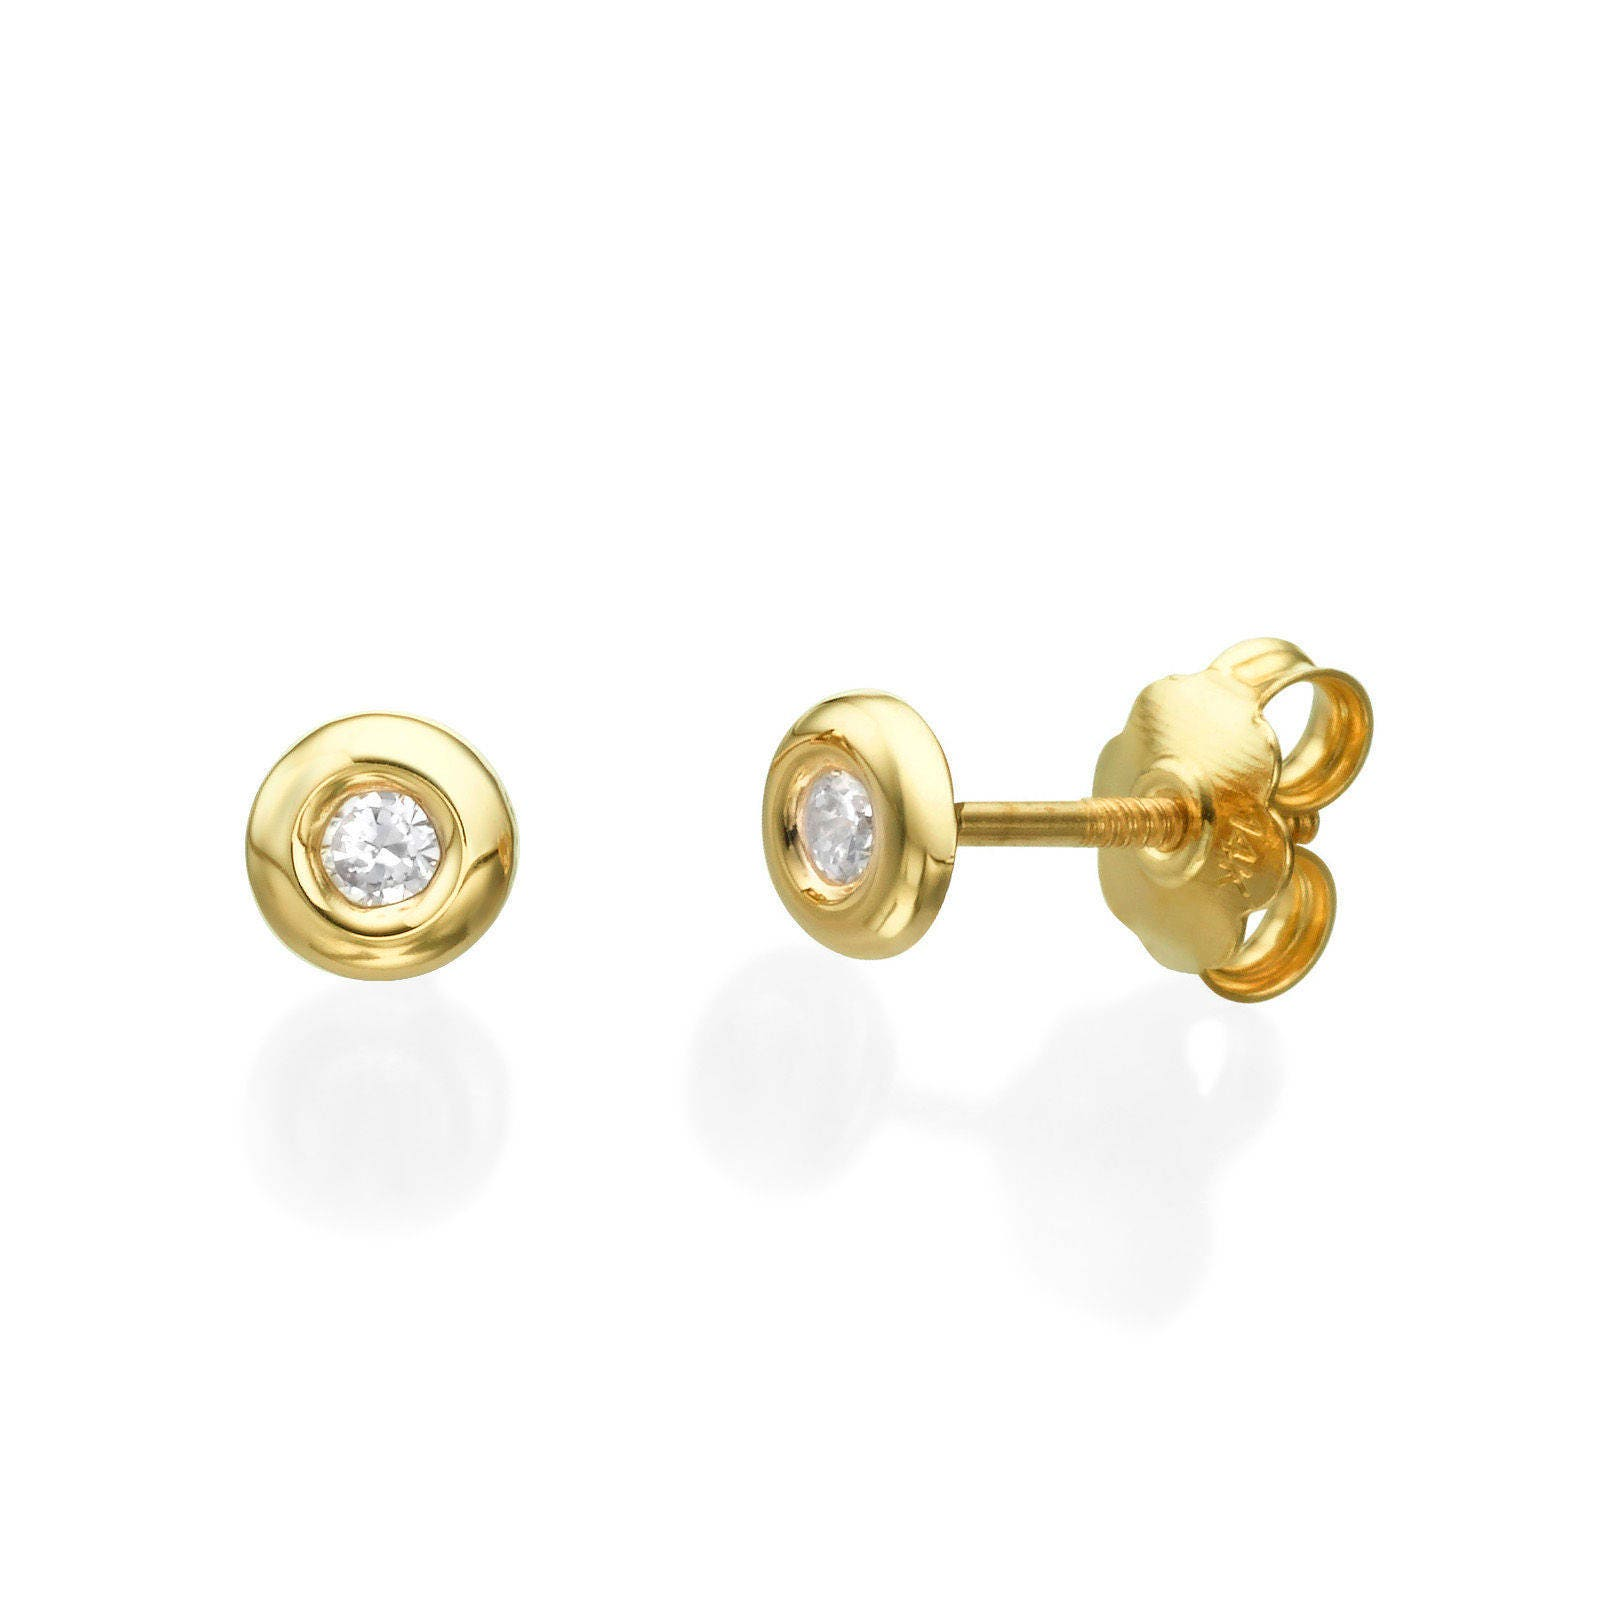 Cubic Zirconia Earrings, Delicate Solid Gold Earrings, 14K Yellow ...